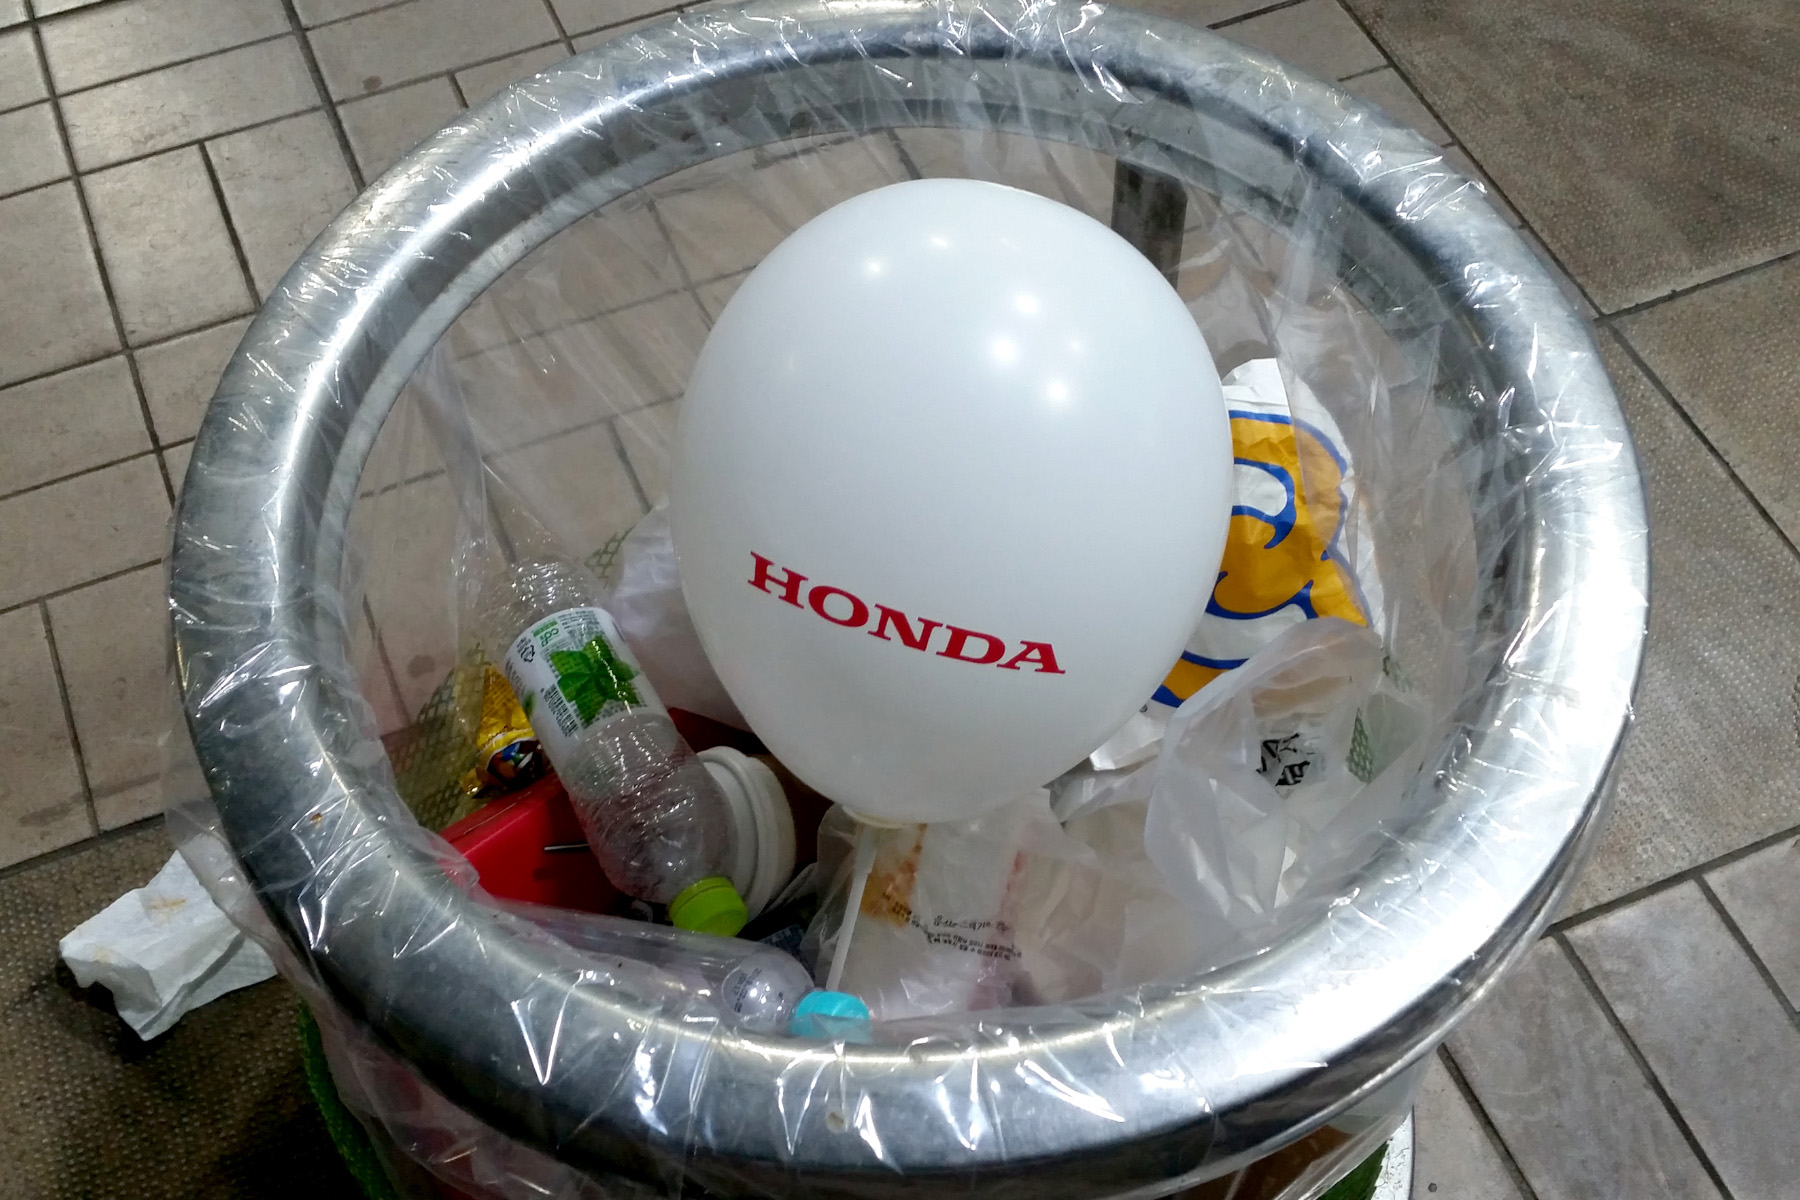 McLaren has binned its Honda partnership.